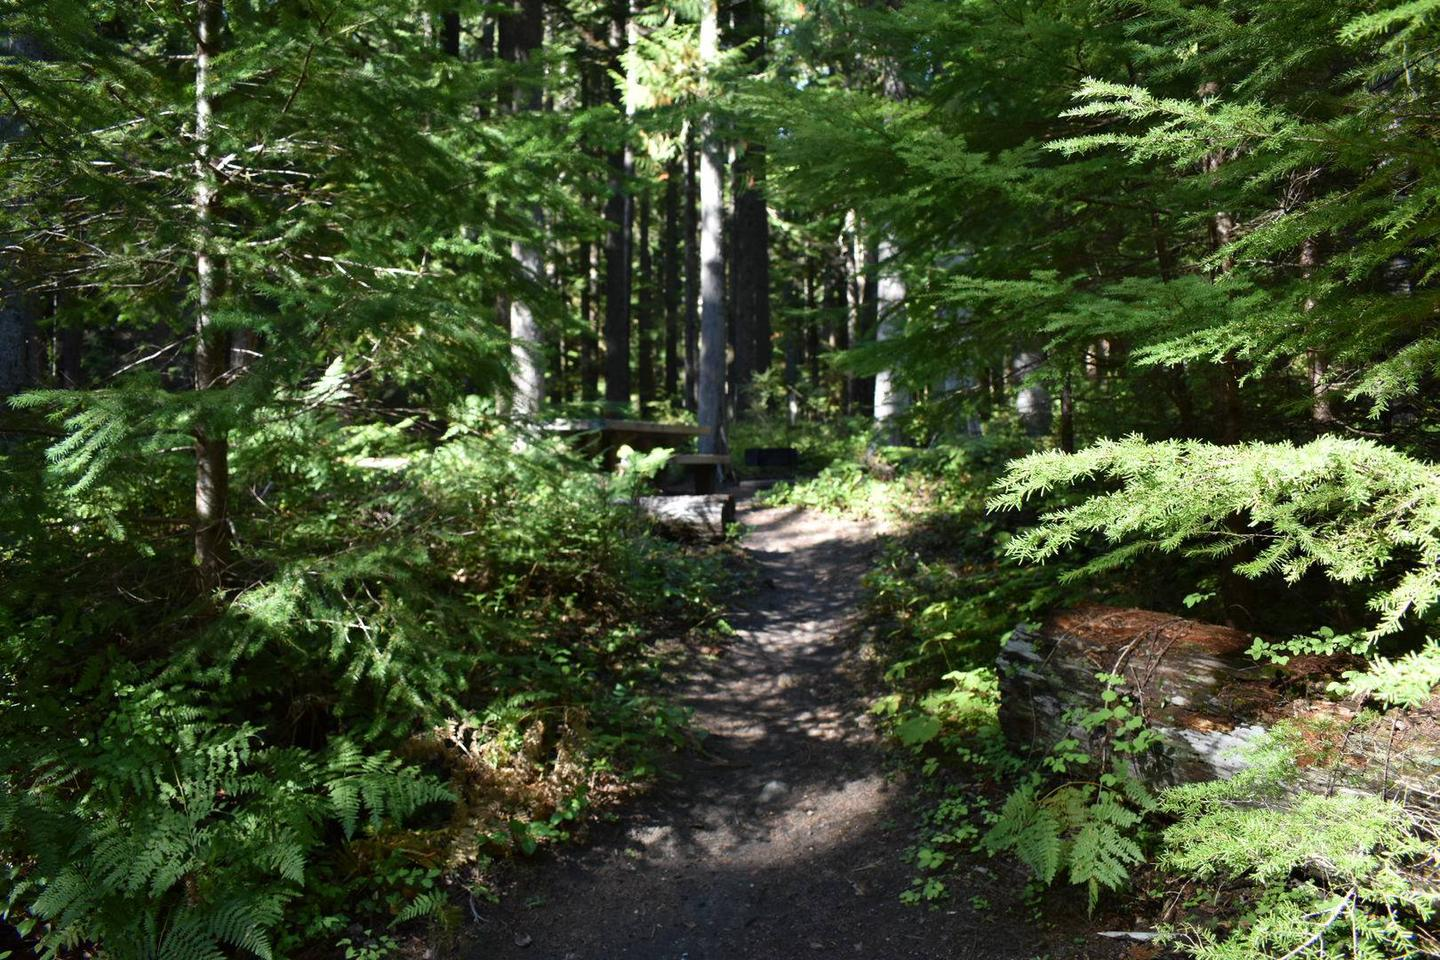 A short path leads from the parking area to the main campsite space.